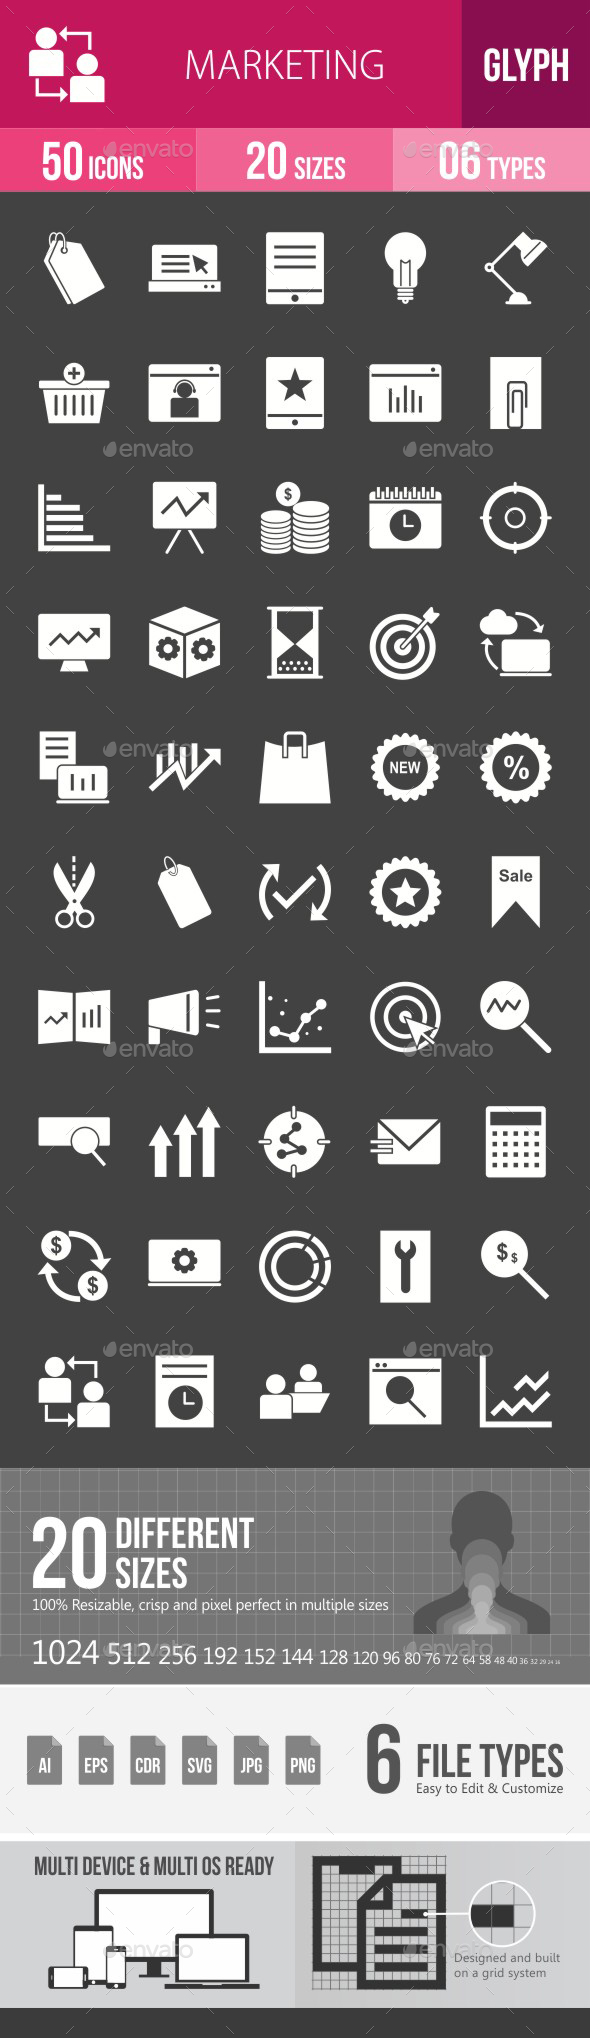 Marketing Glyph Inverted Icons - Icons